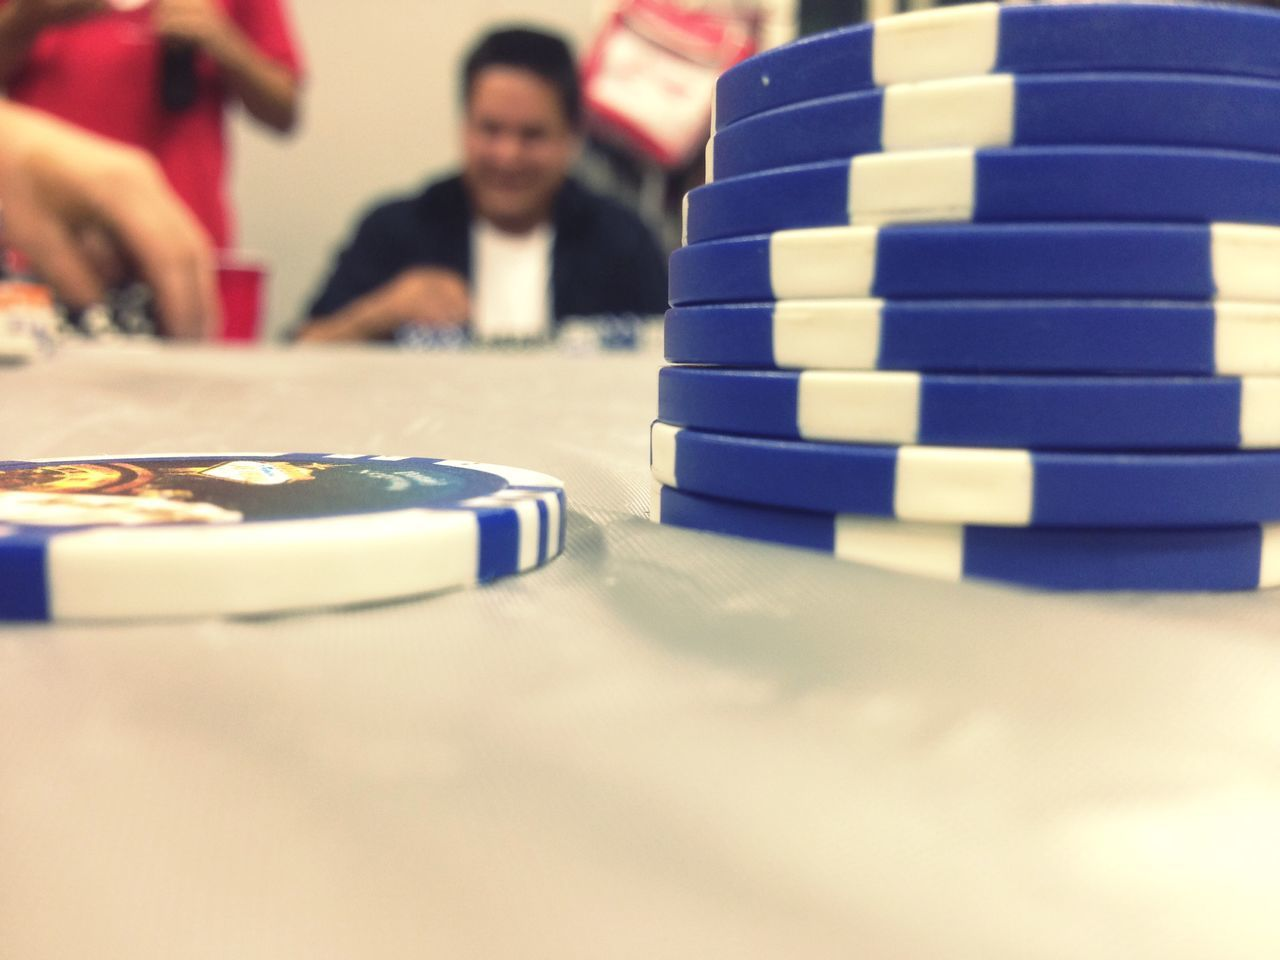 Stacks Of Gambling Chips On Table